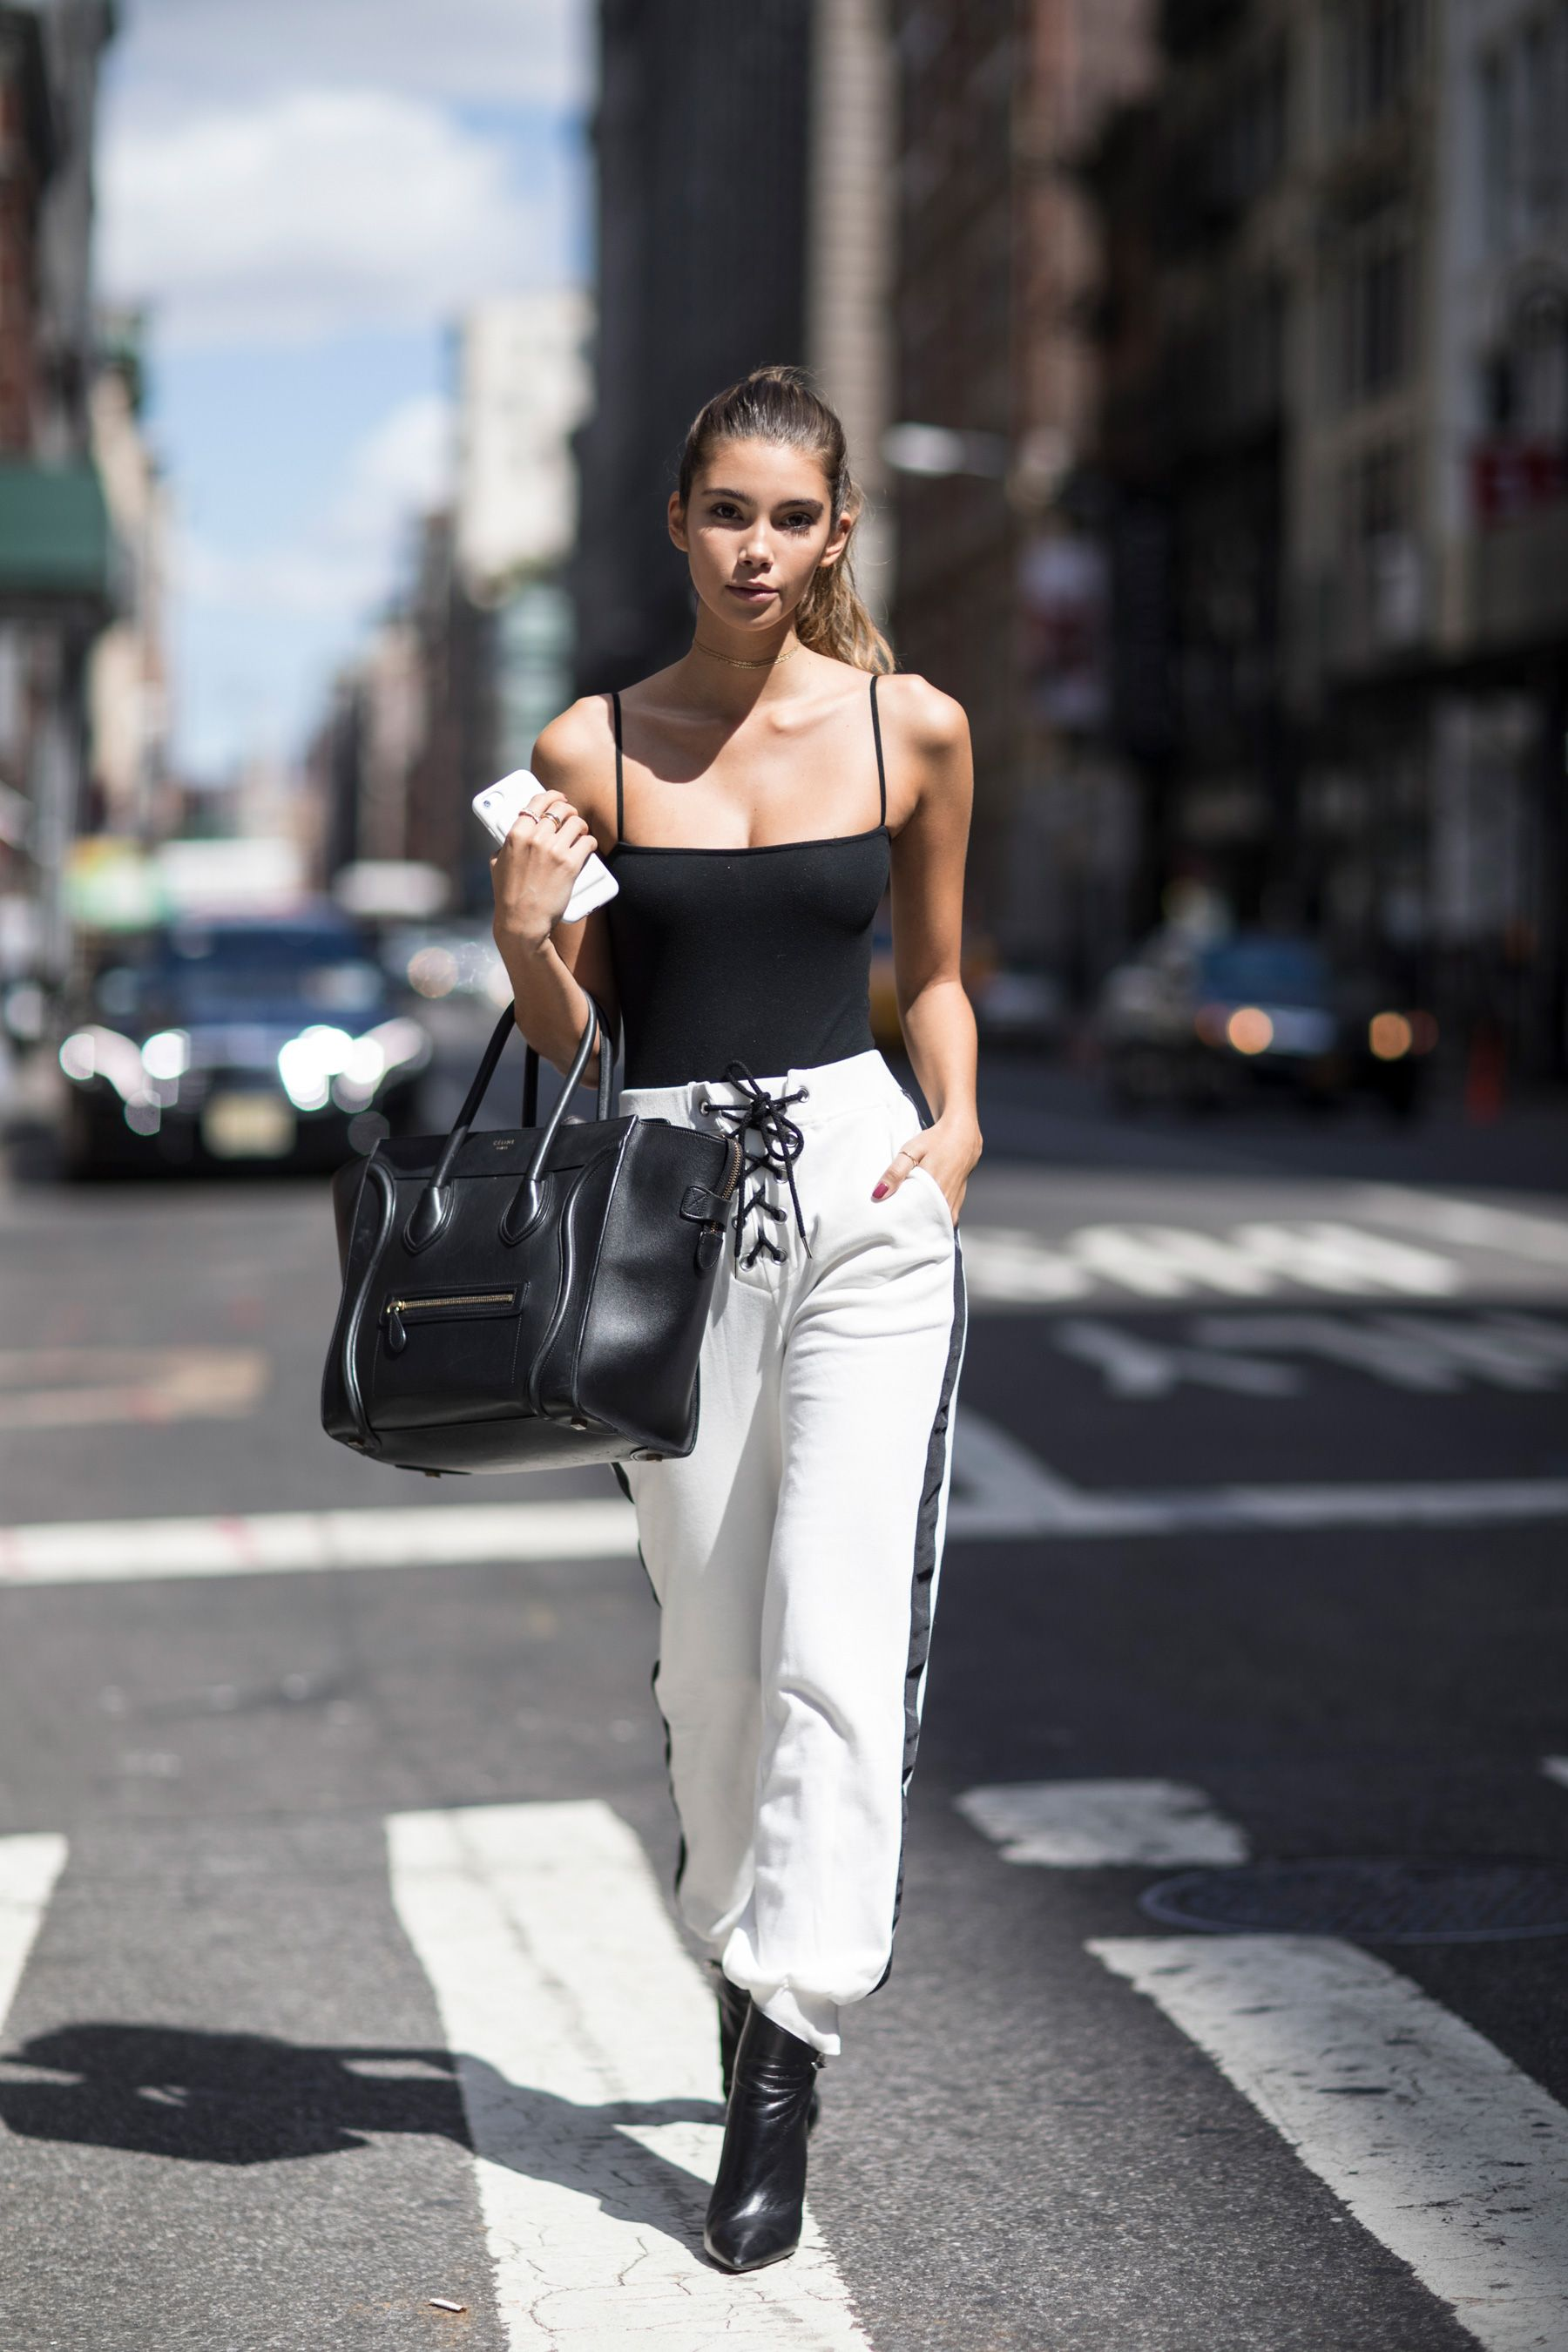 The Best Street Style From New York Fashion Week Street Style Spring 2018 The Art Of Fashion